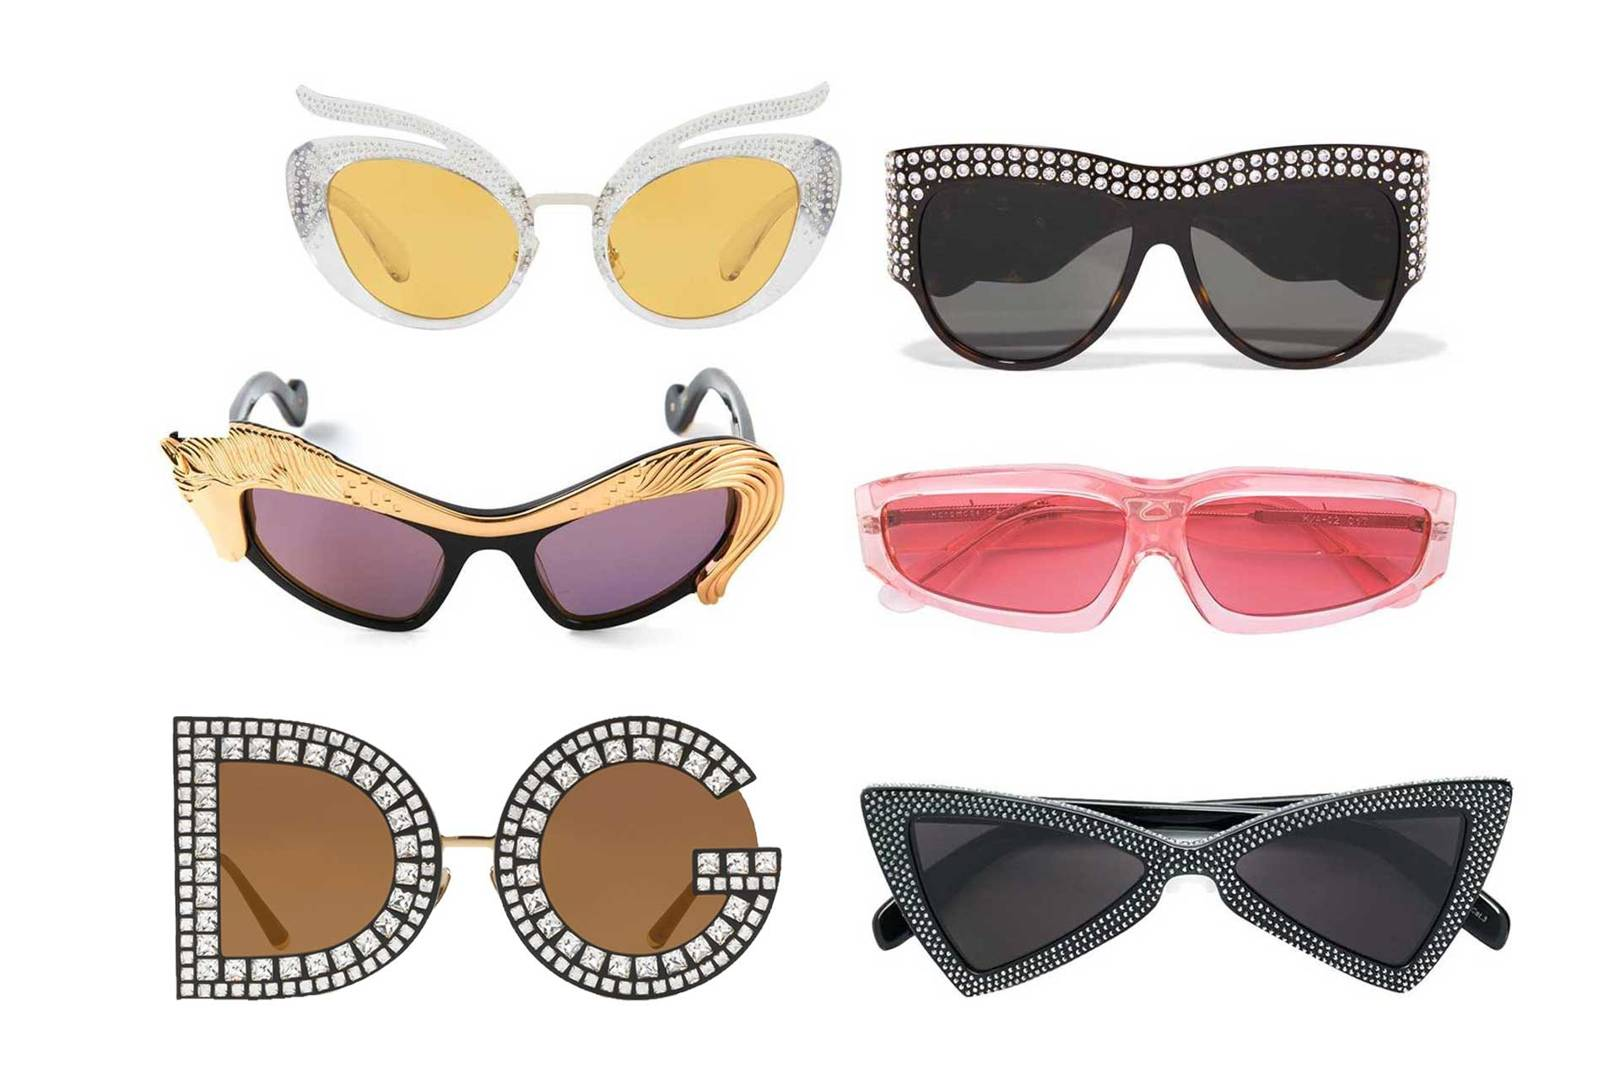 9176d814205 The Sunglasses Trends To Get On Board With This Season